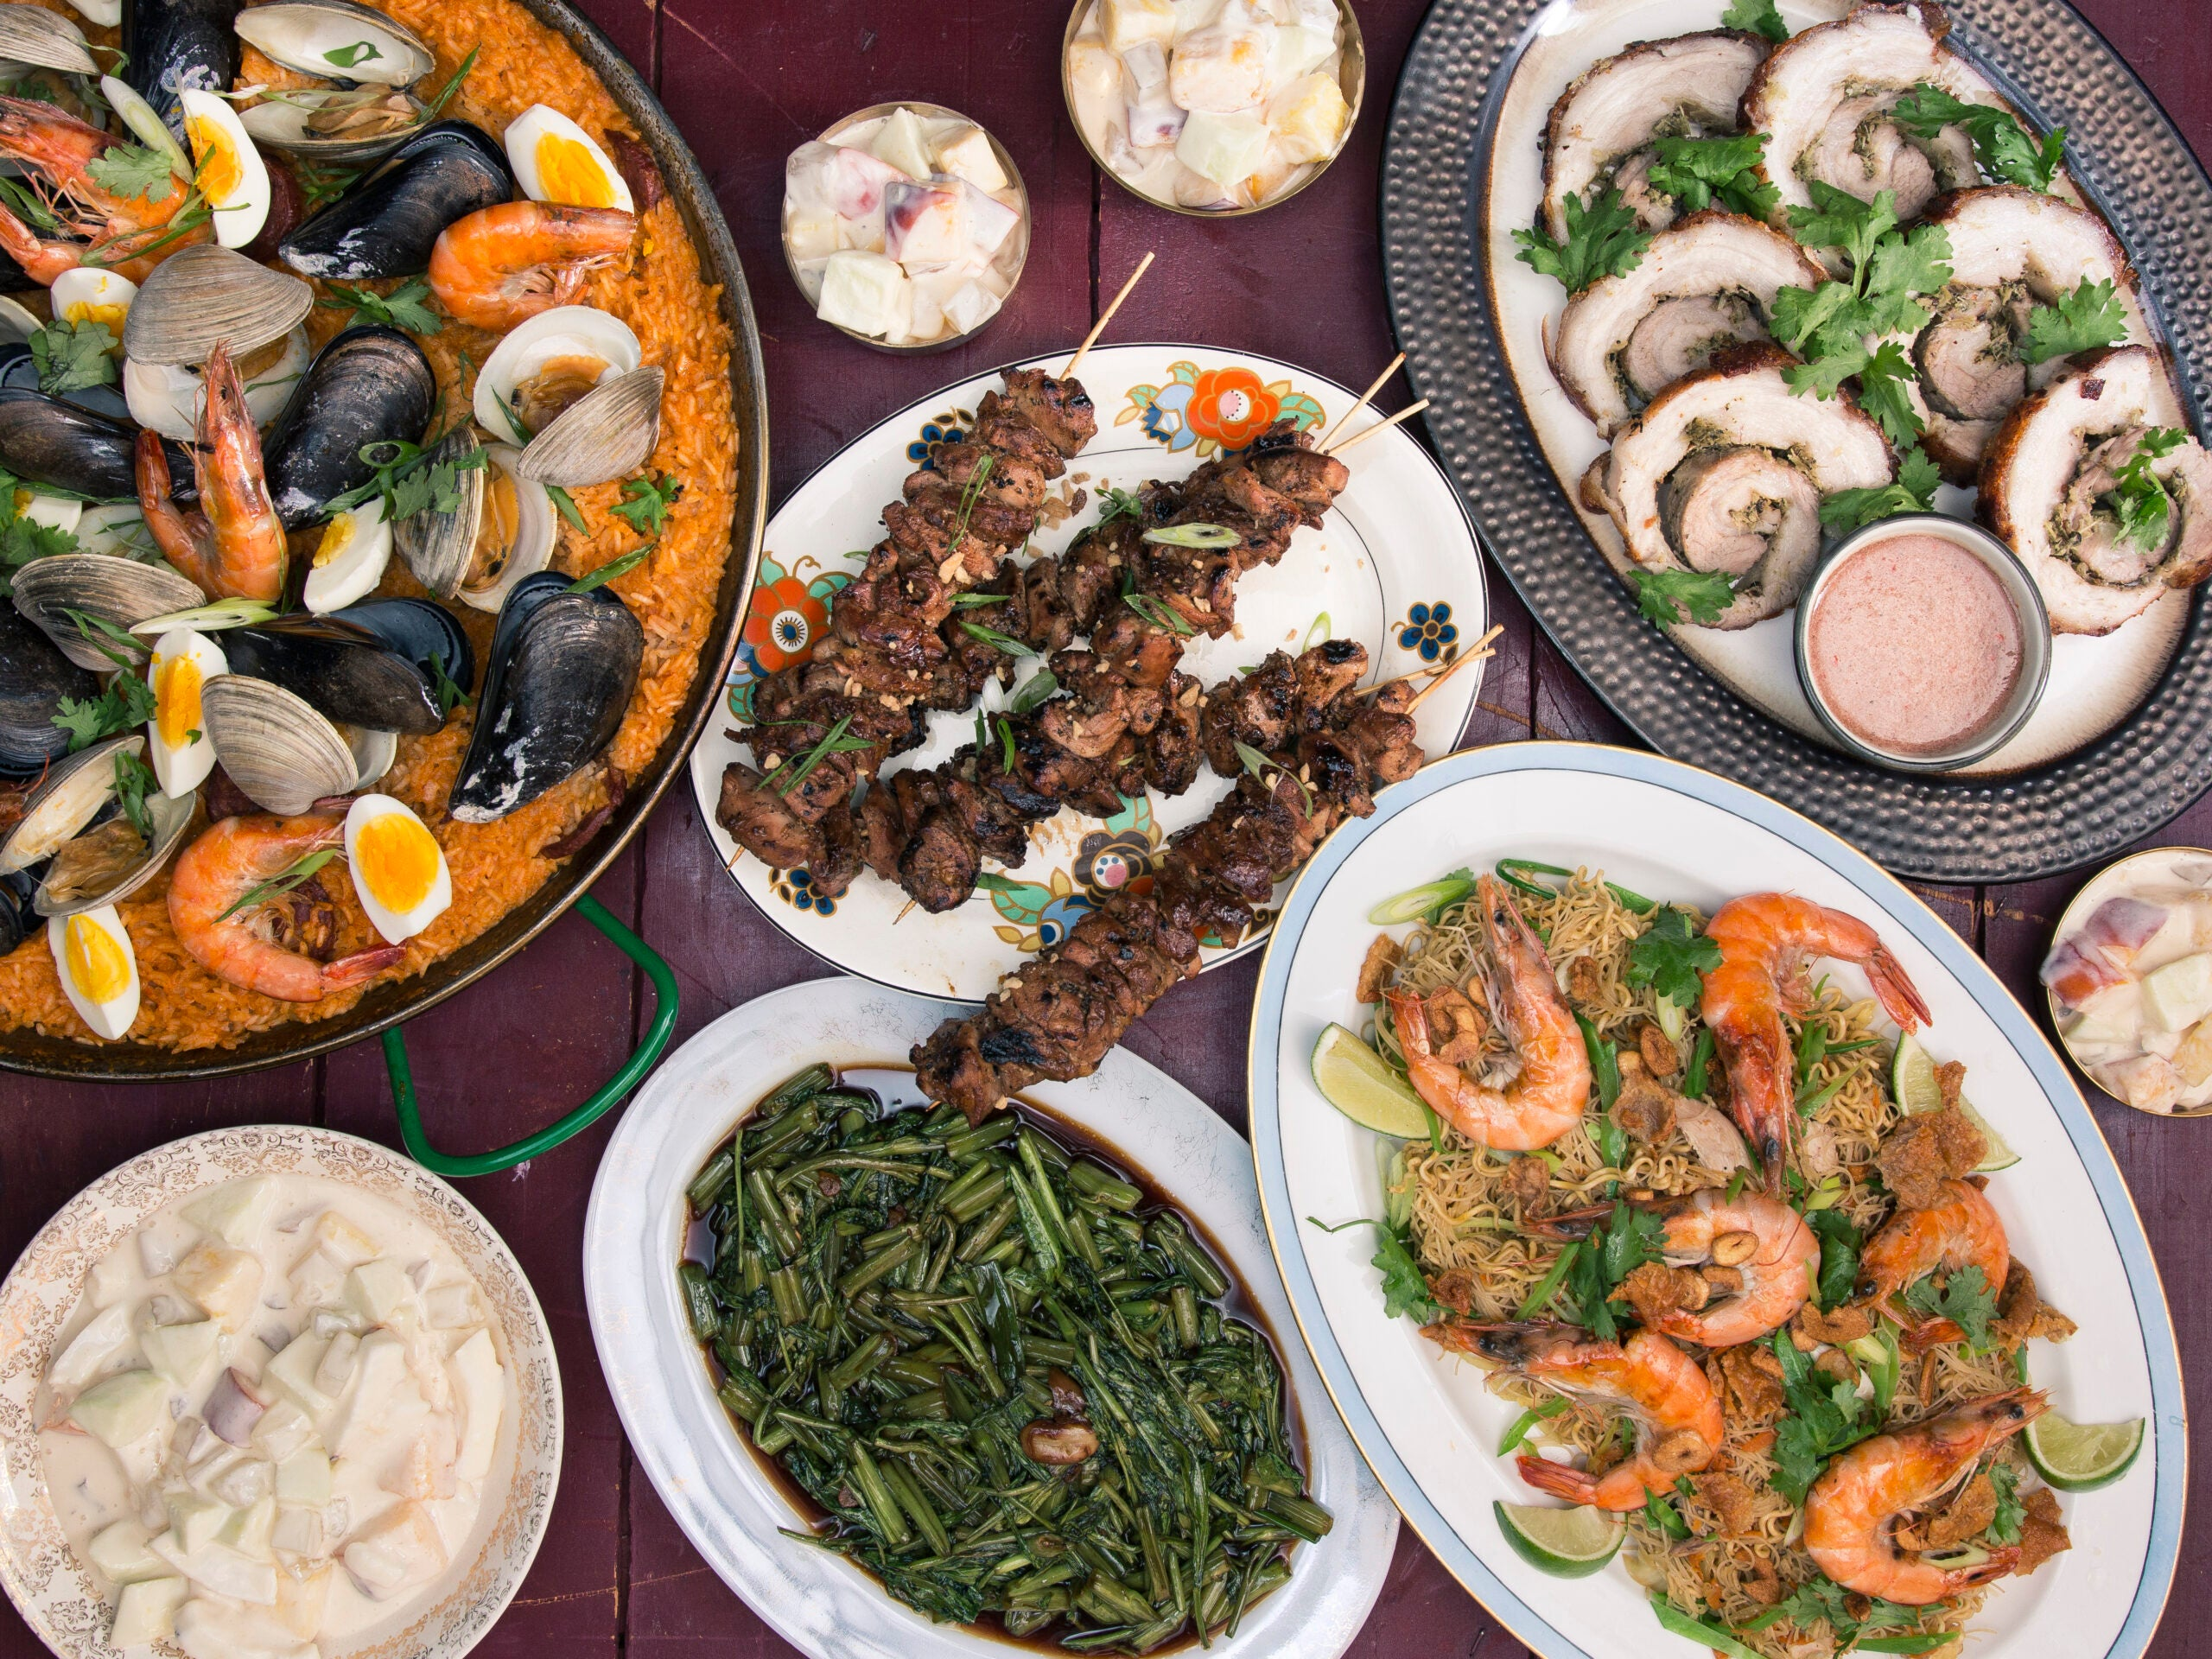 A Filipino Feast Fit for Your Whole Family